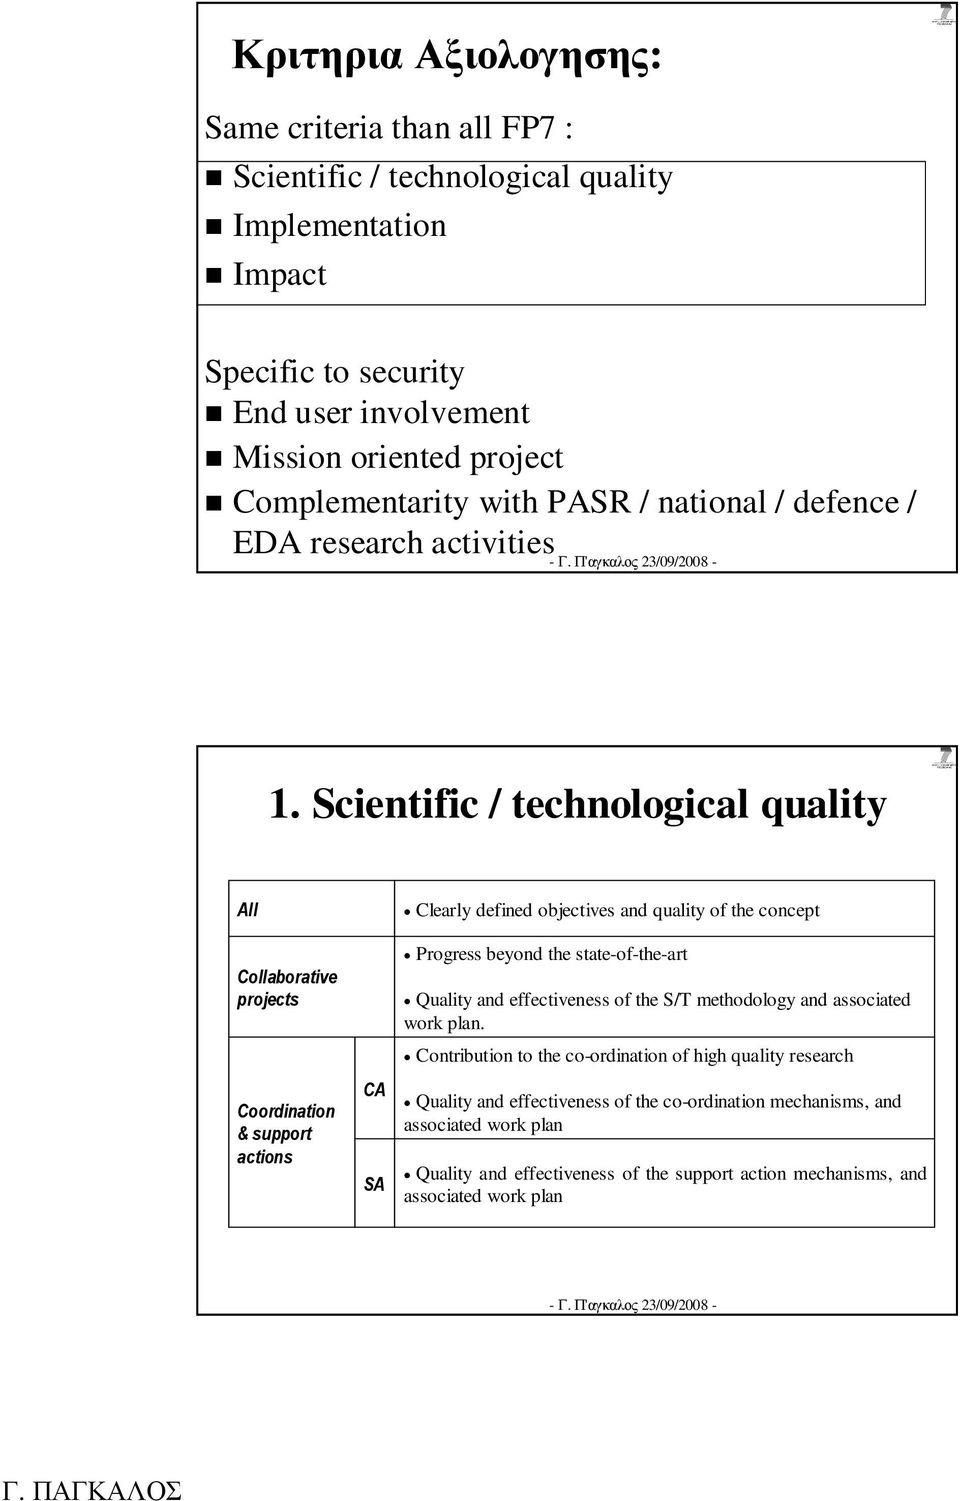 Scientific / technological quality All Collaborative projects Coordination & support actions CA SA Clearly defined objectives and quality of the concept Progress beyond the